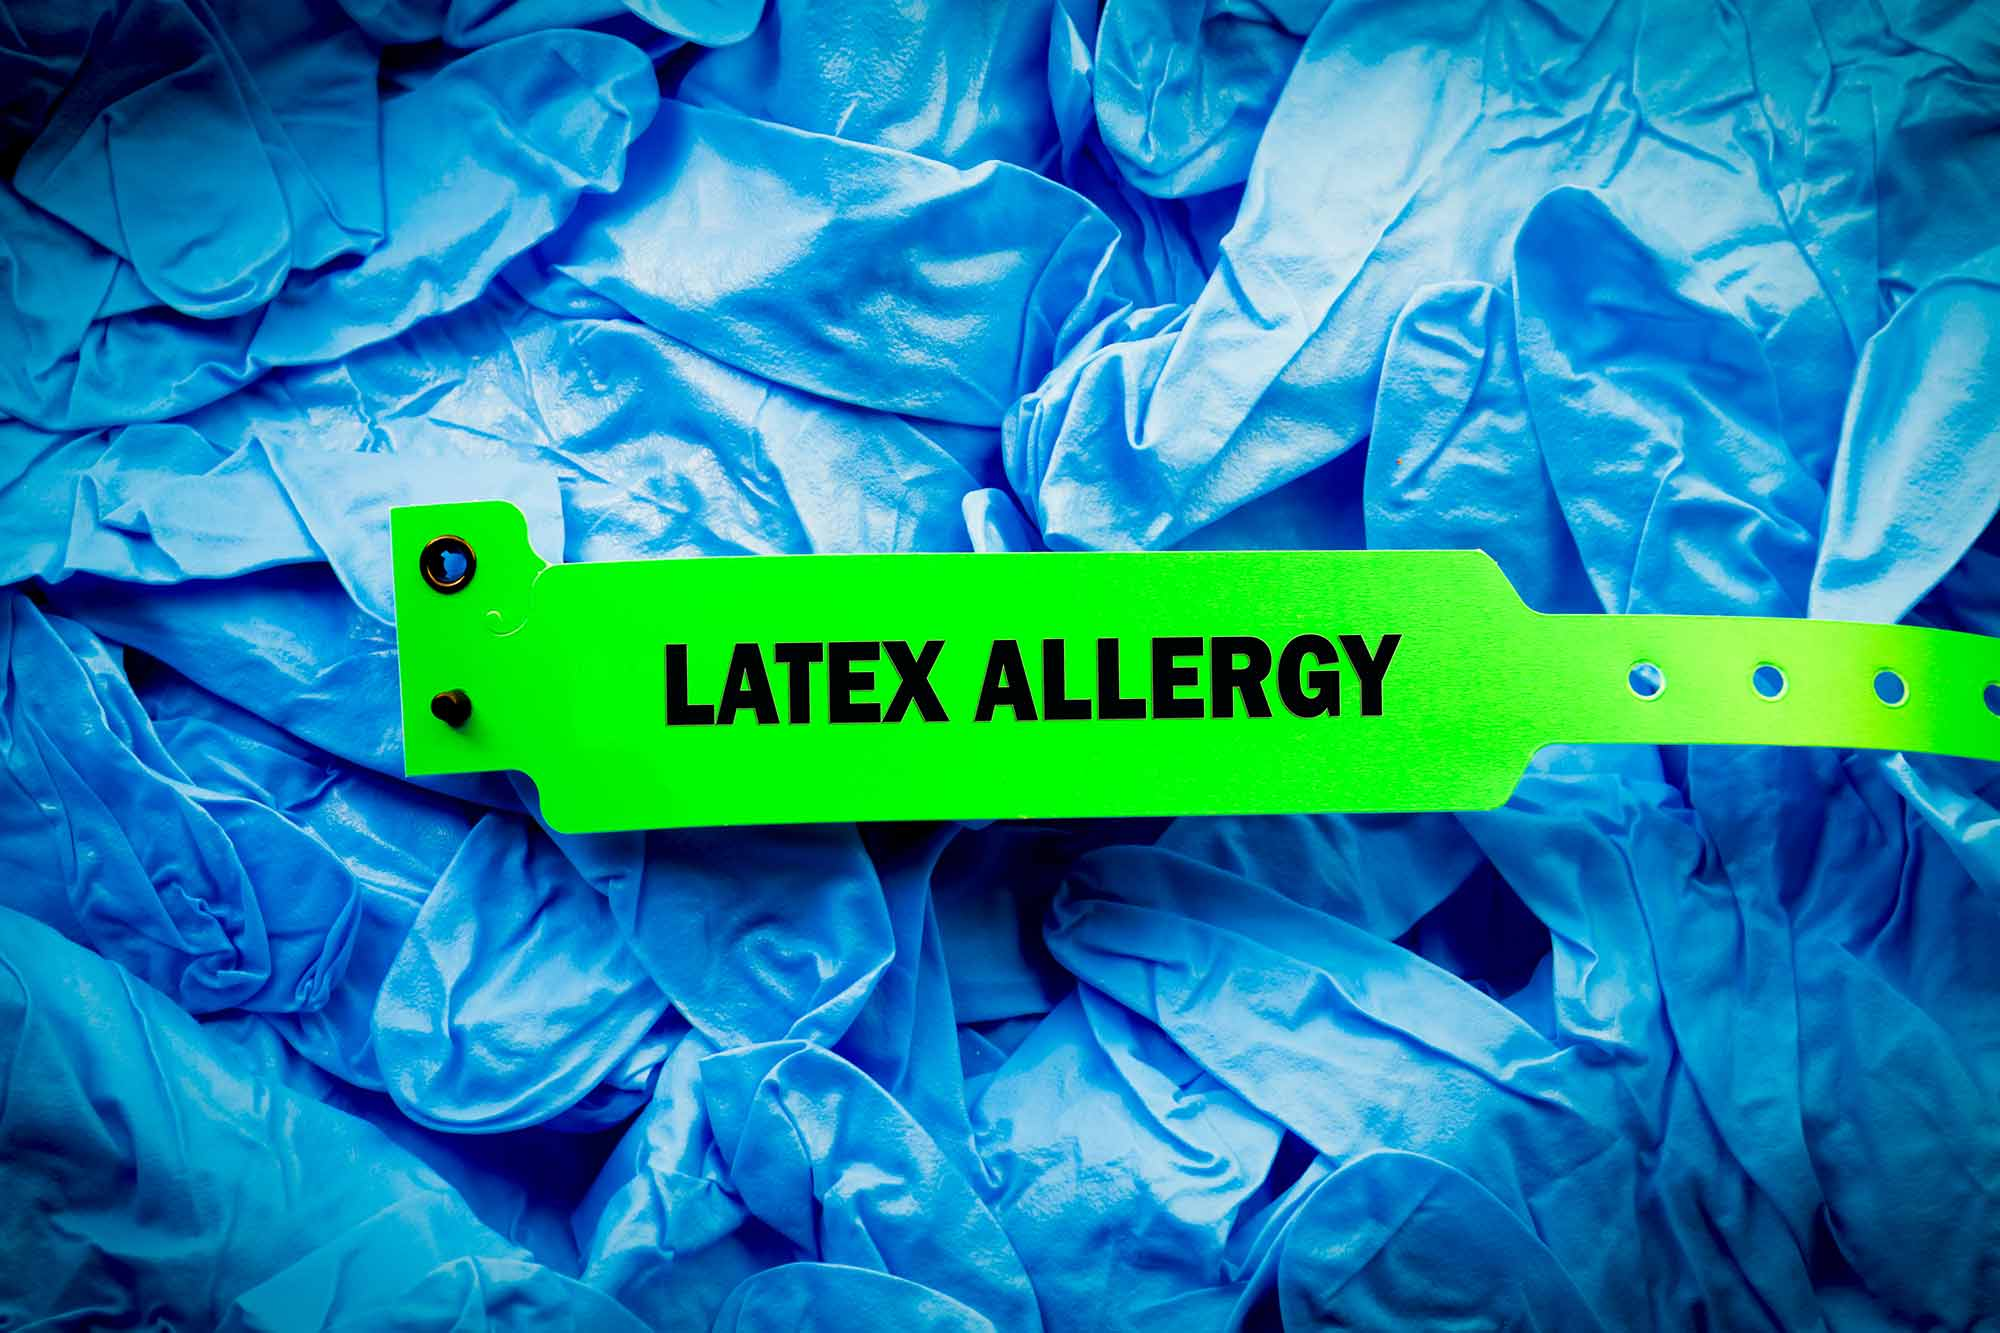 latex allergy hospital band latex allergies